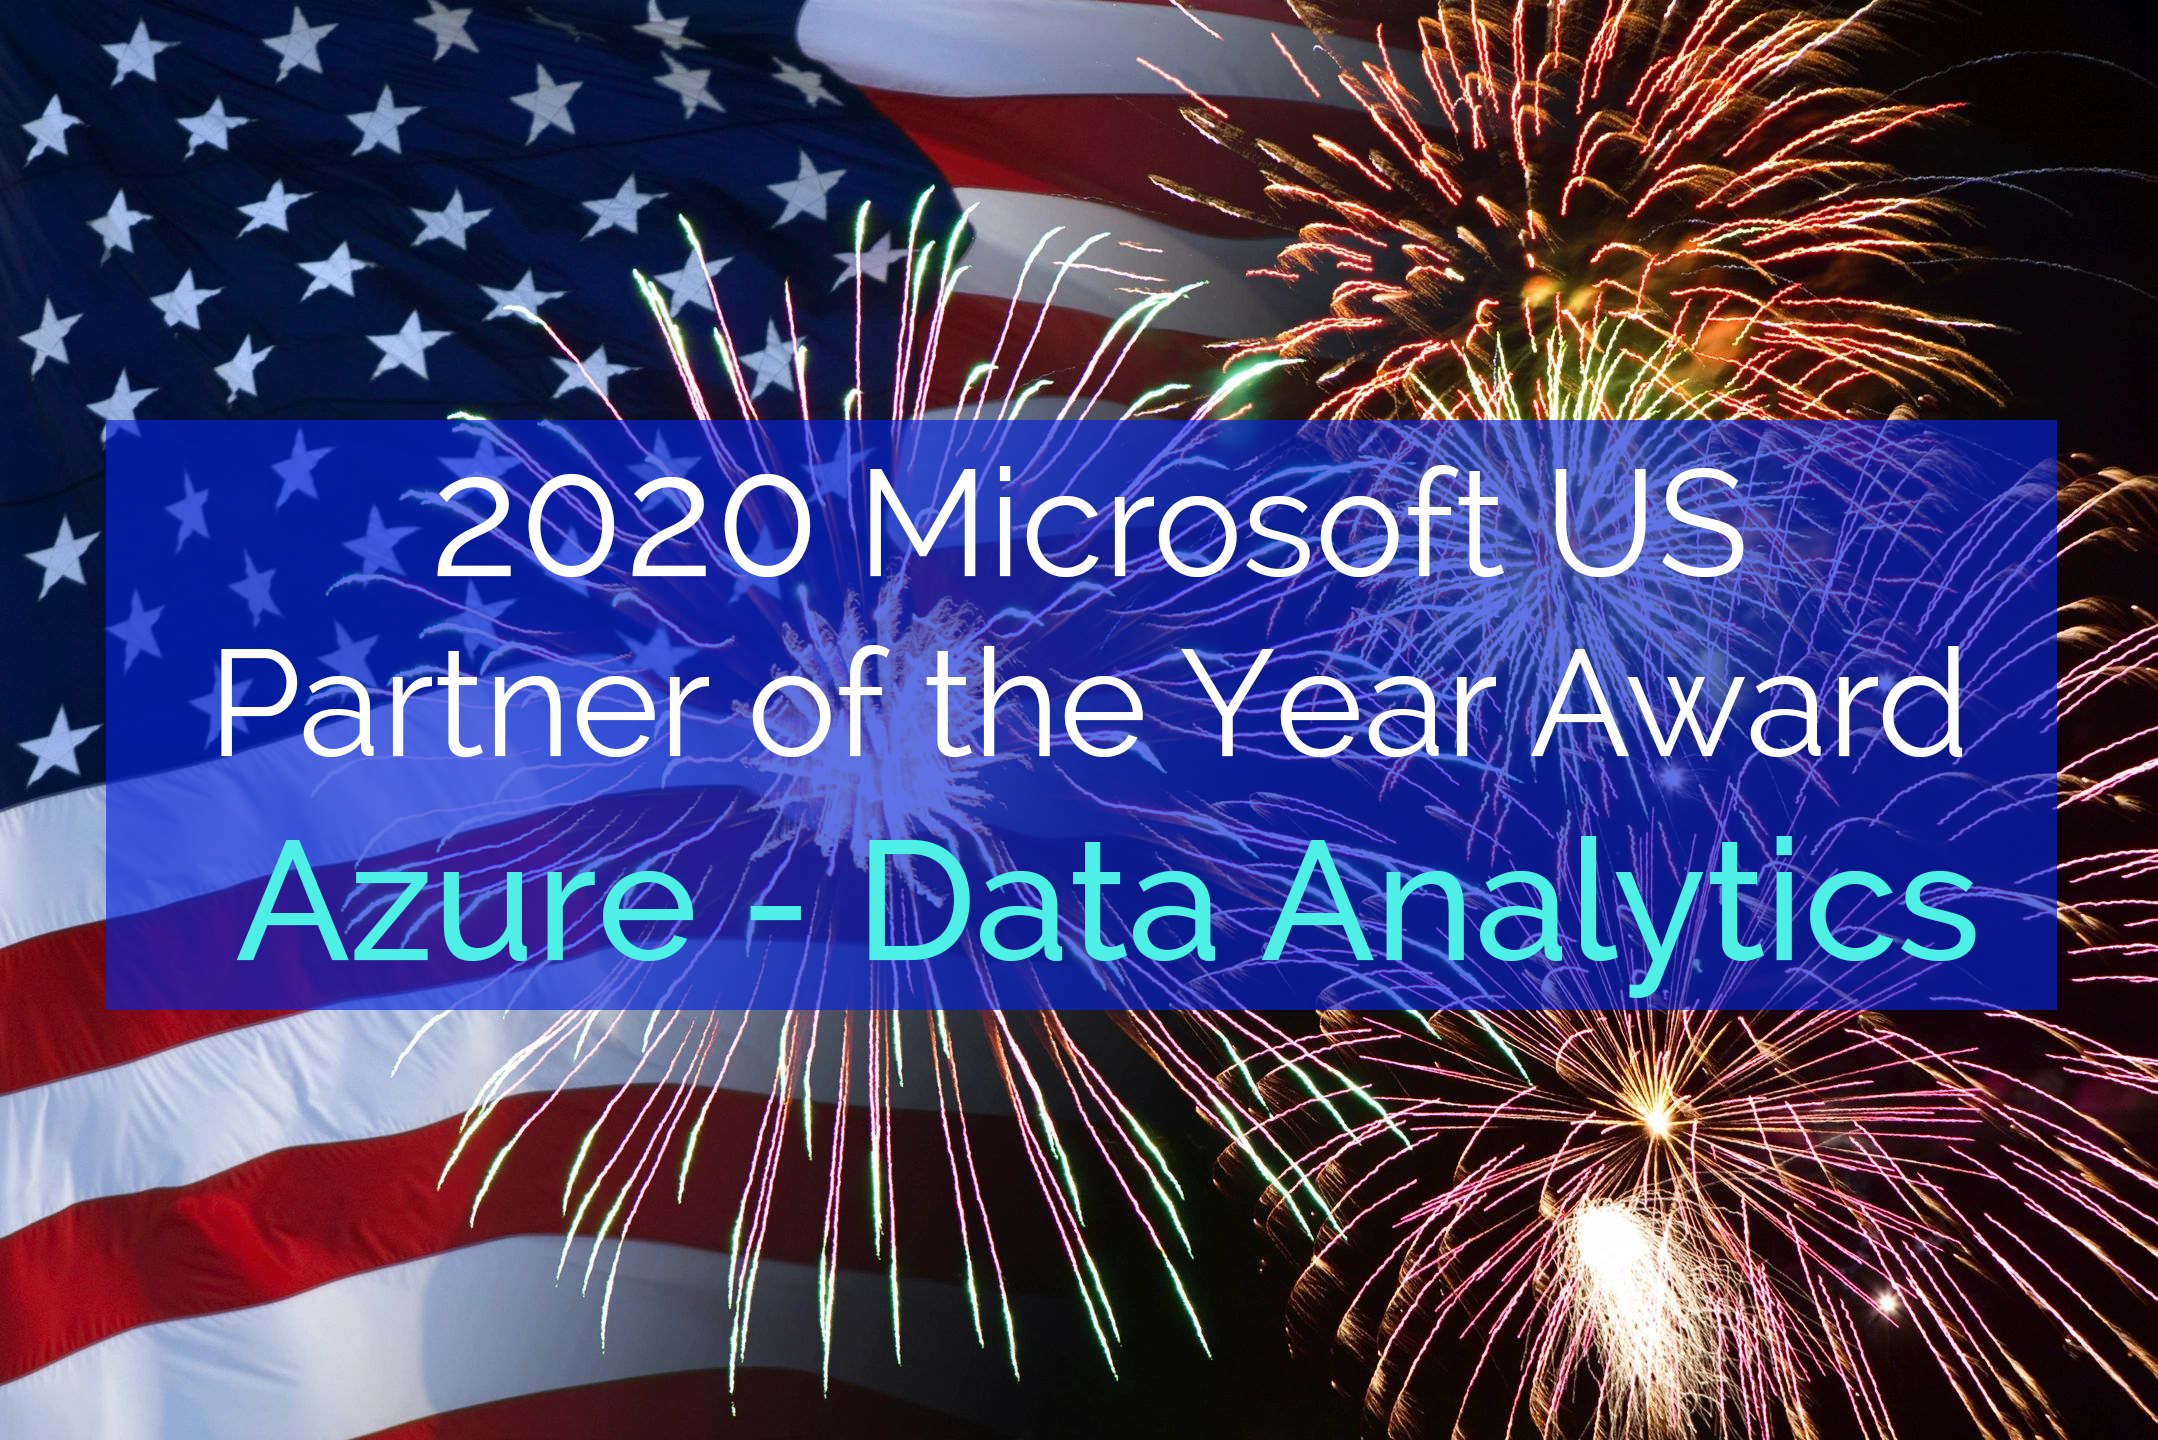 US Partner Award Azure Data Analytics 2020